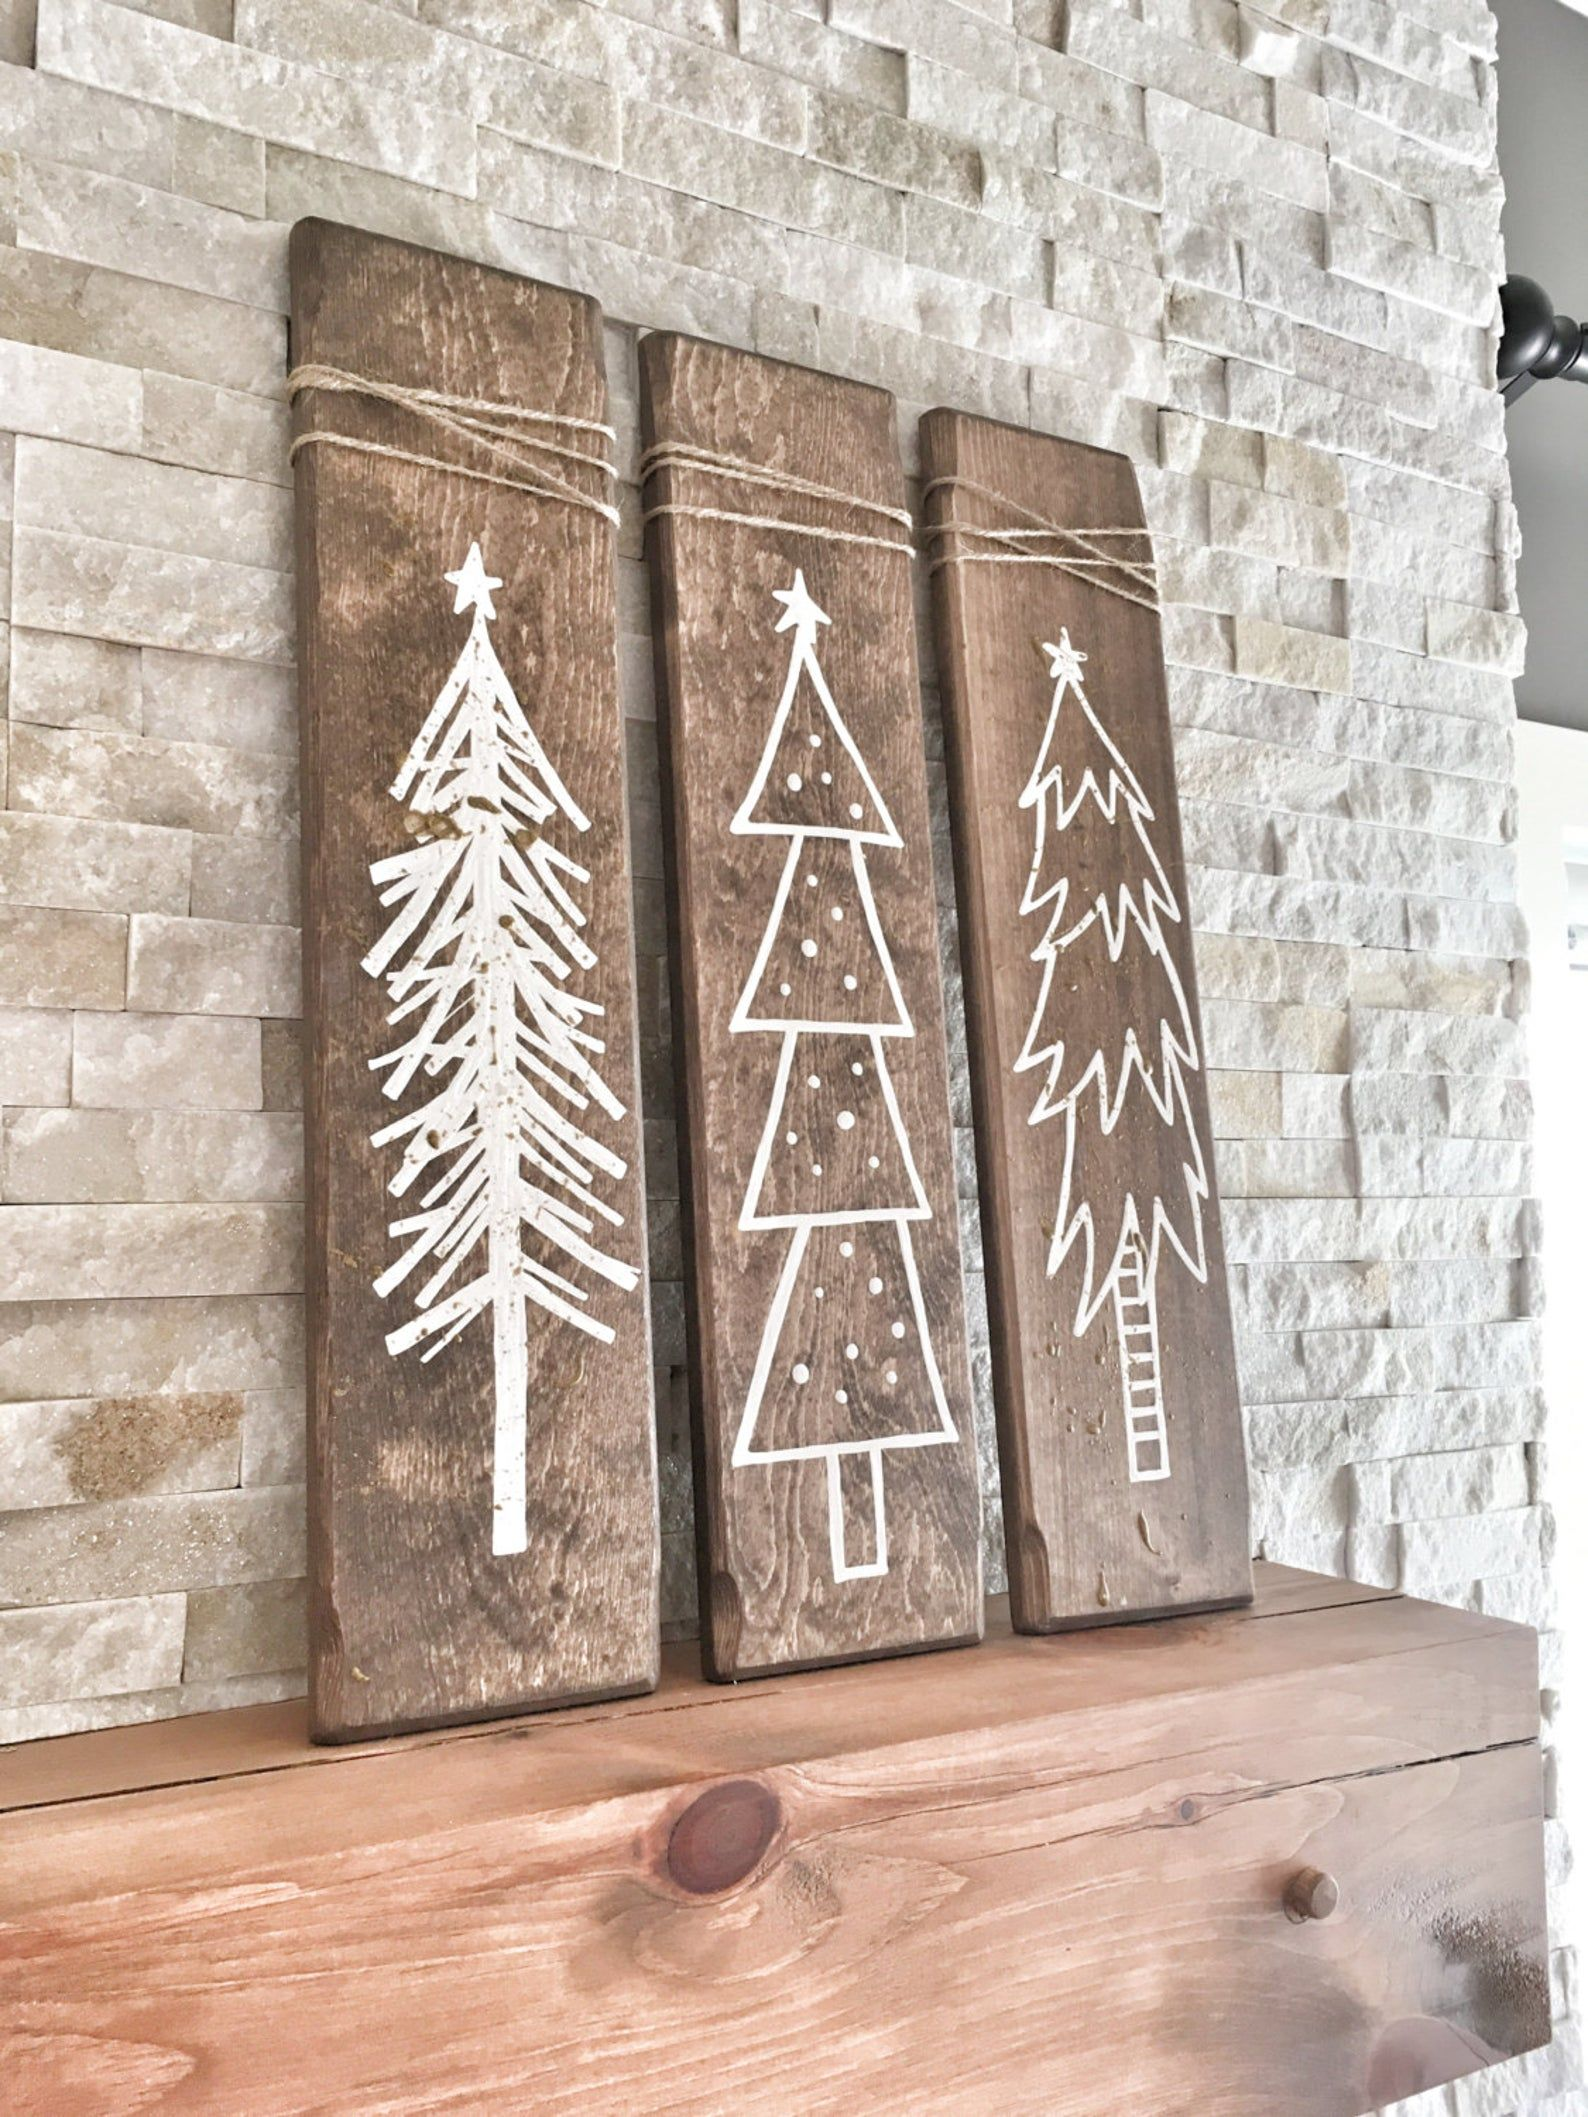 Set of 3 Rustic Wooden Christmas Trees, Xmas Wood Tree Decoration for Holiday Season, Christmas Holiday Gift and Present, Rustic Christmas #setinstains